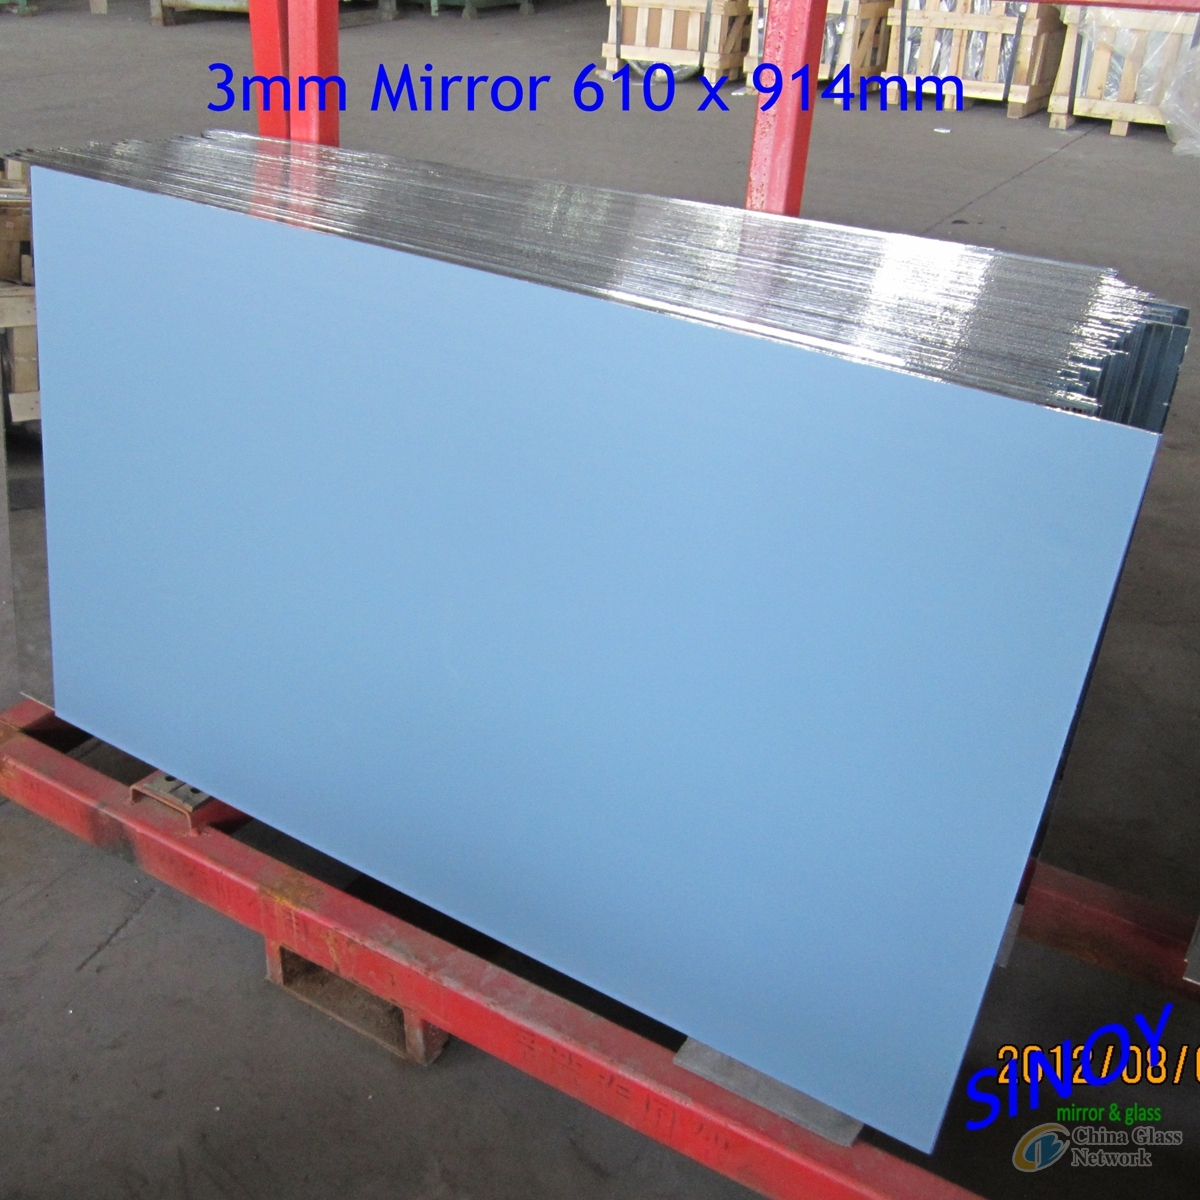 4mm Aluminum Mirror 1830 x 2440mm/2134 x 3300mm with magnetron sputtering coating technology